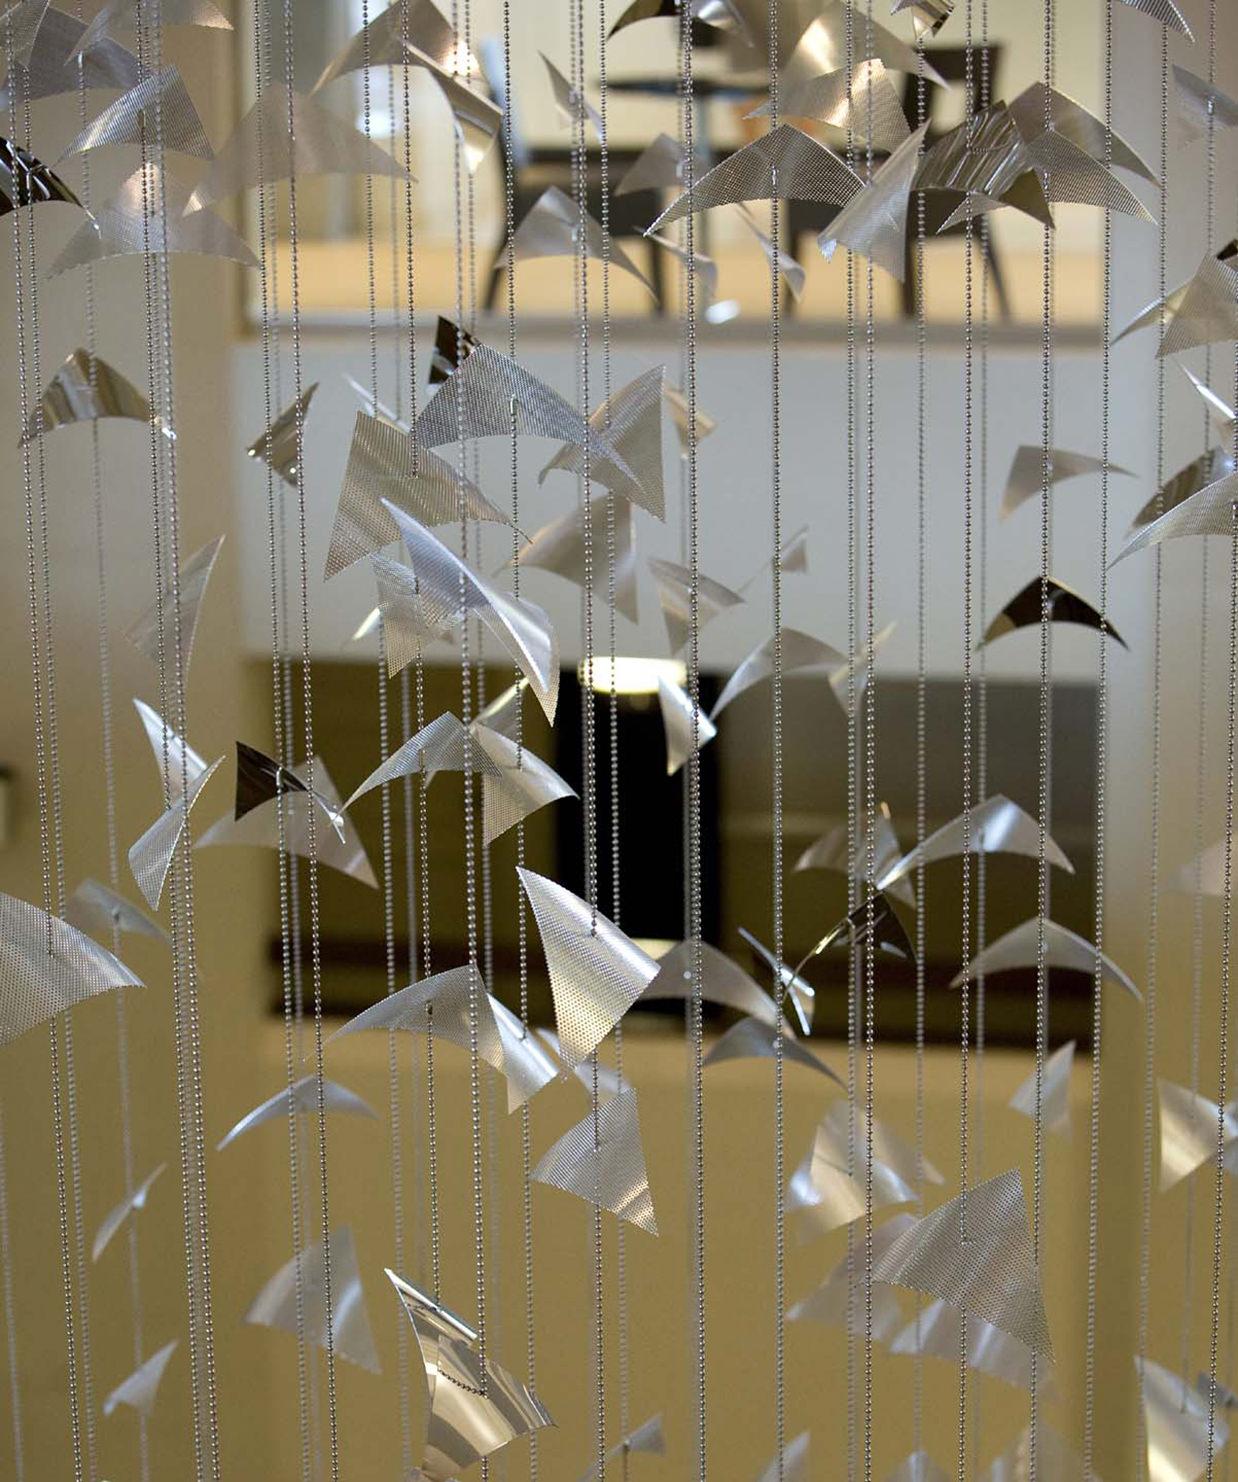 Silver elements of Migration, suspended sculpture by Talley Fisher